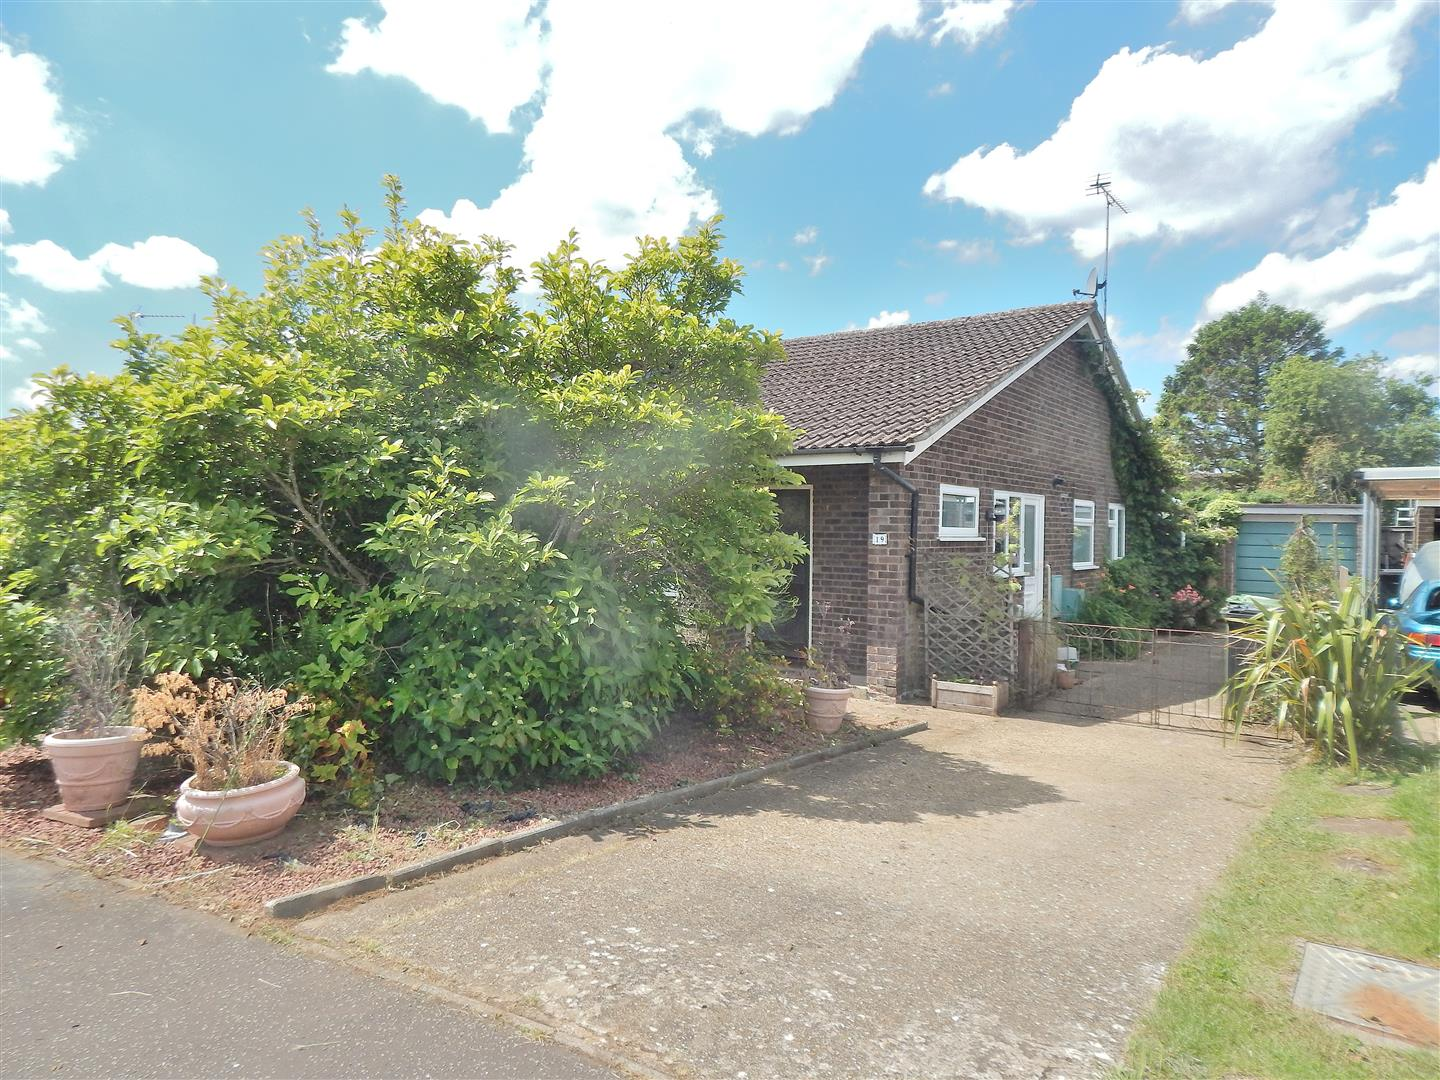 2 bed semi-detached bungalow for sale in King's Lynn, PE31 6PG, PE31